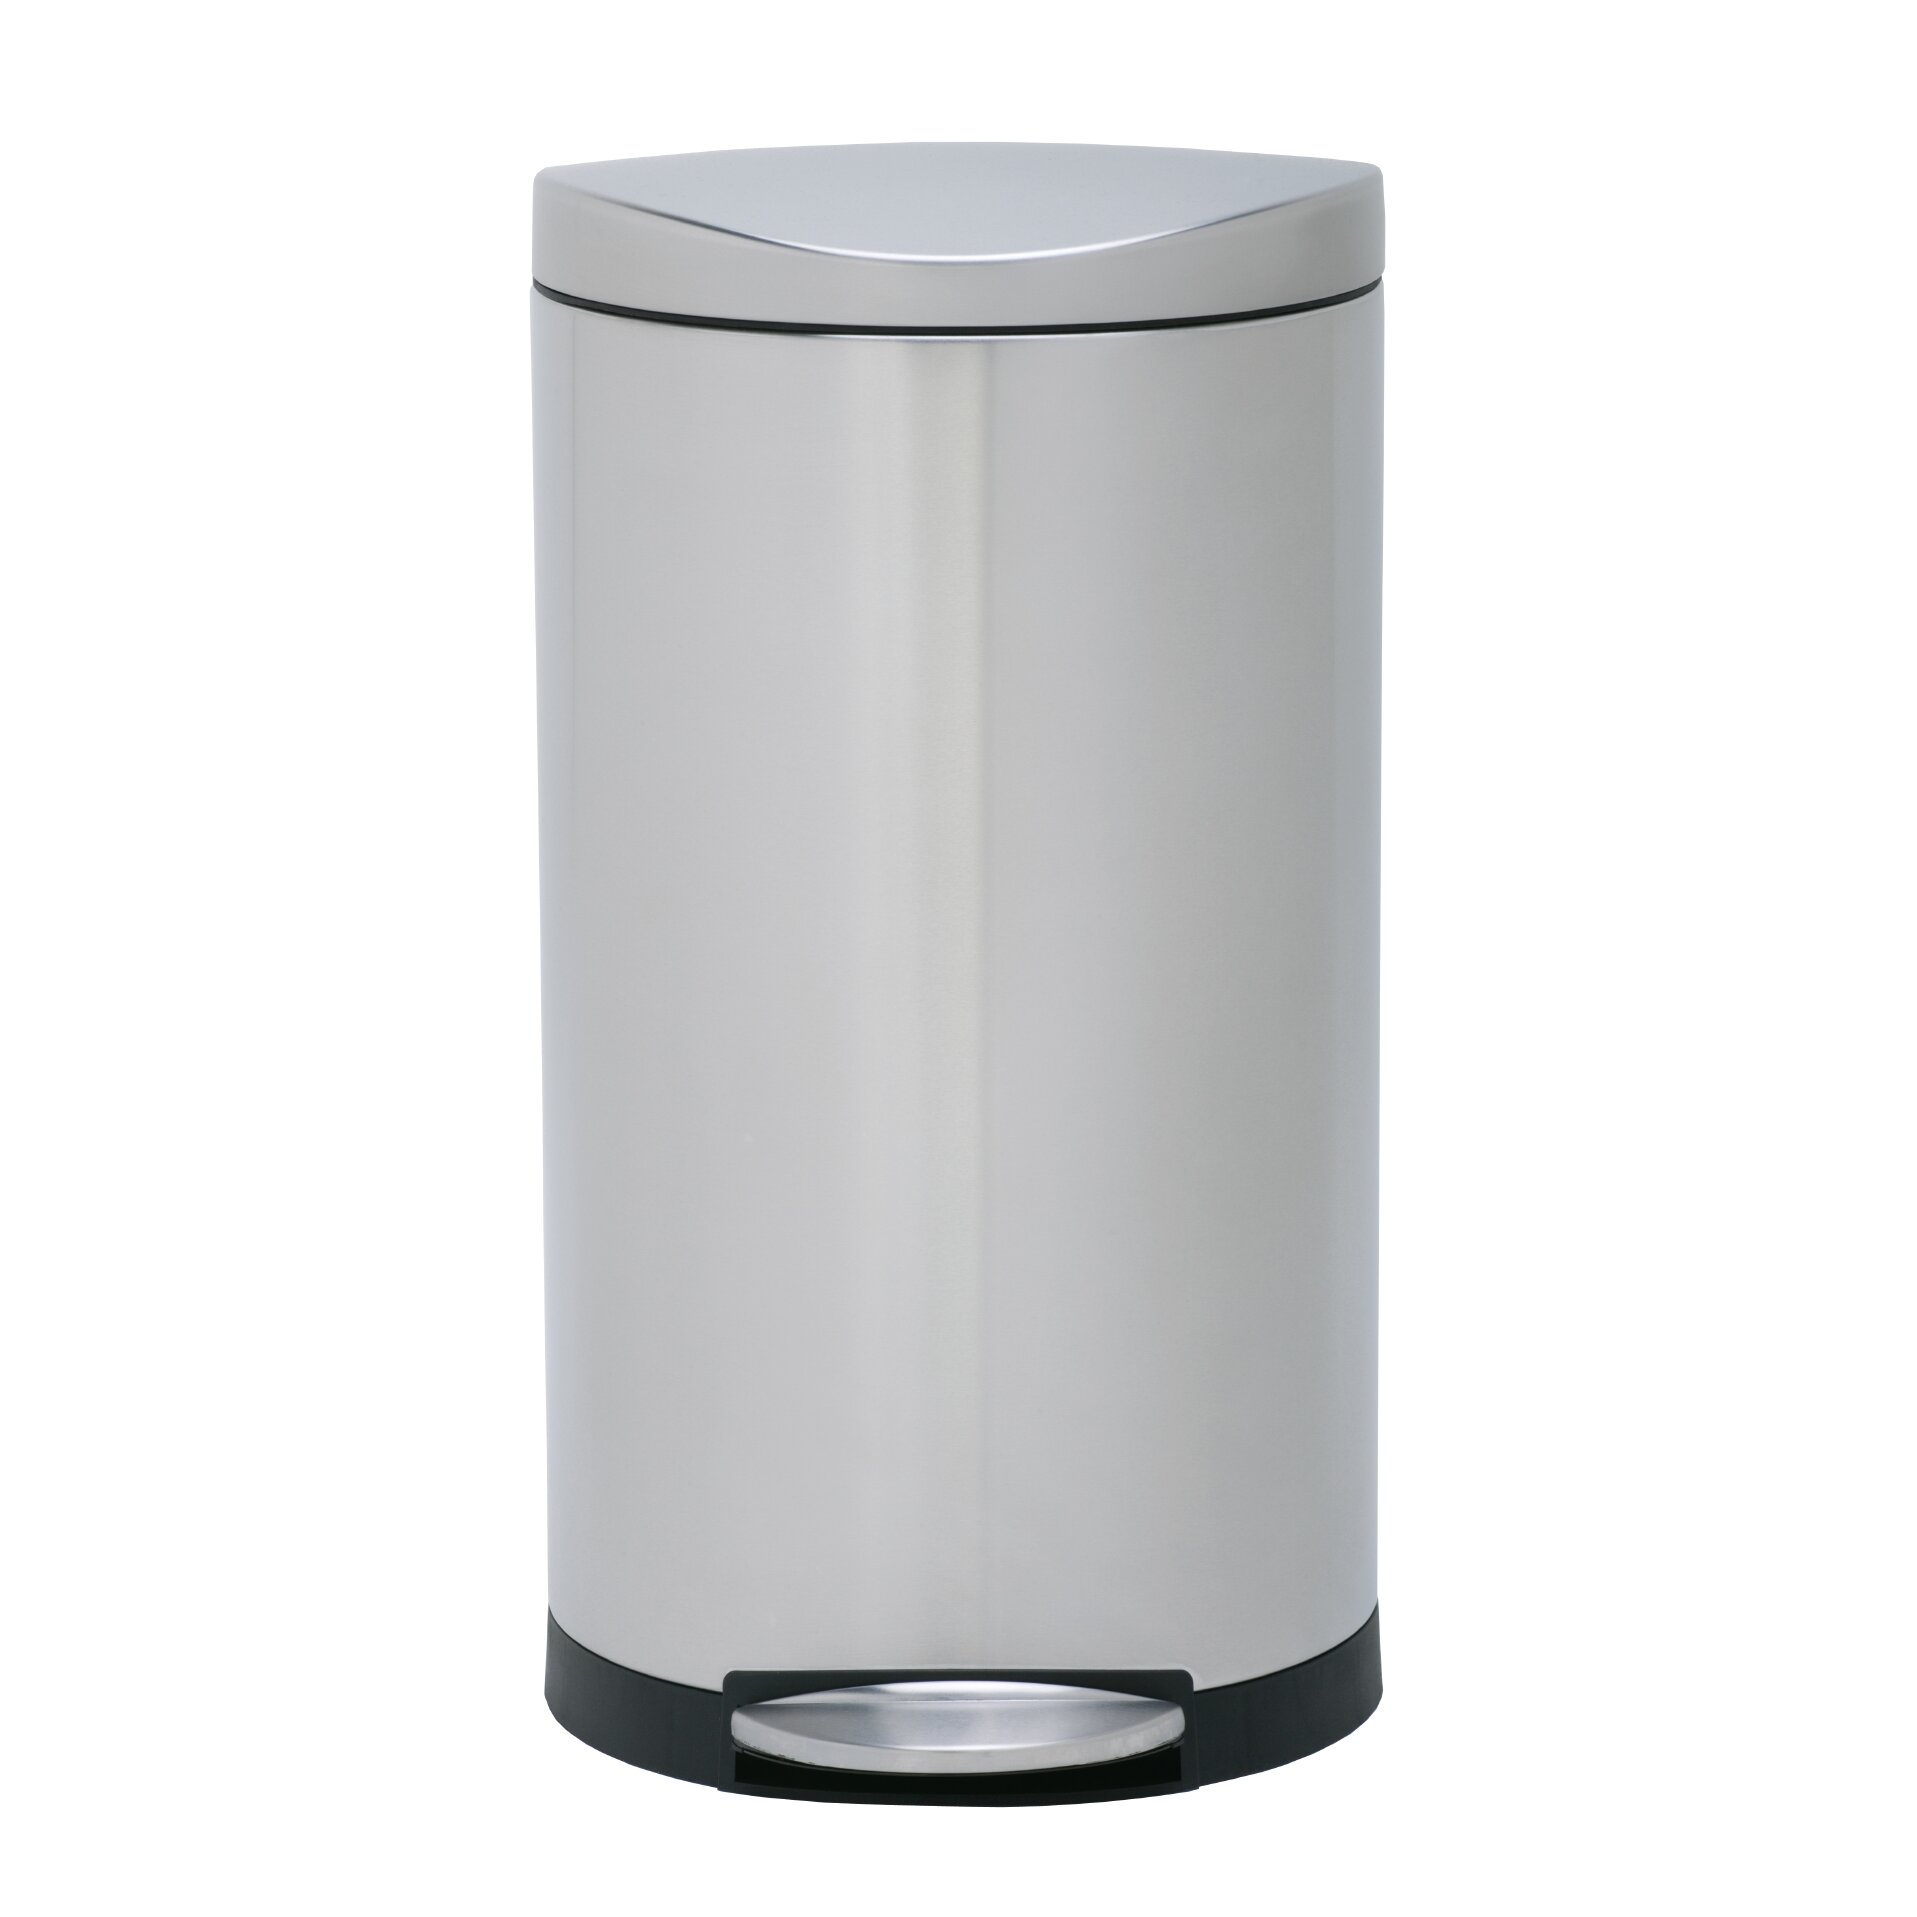 simplehuman 7 9 gallon step on stainless steel trash can reviews wayfair. Black Bedroom Furniture Sets. Home Design Ideas